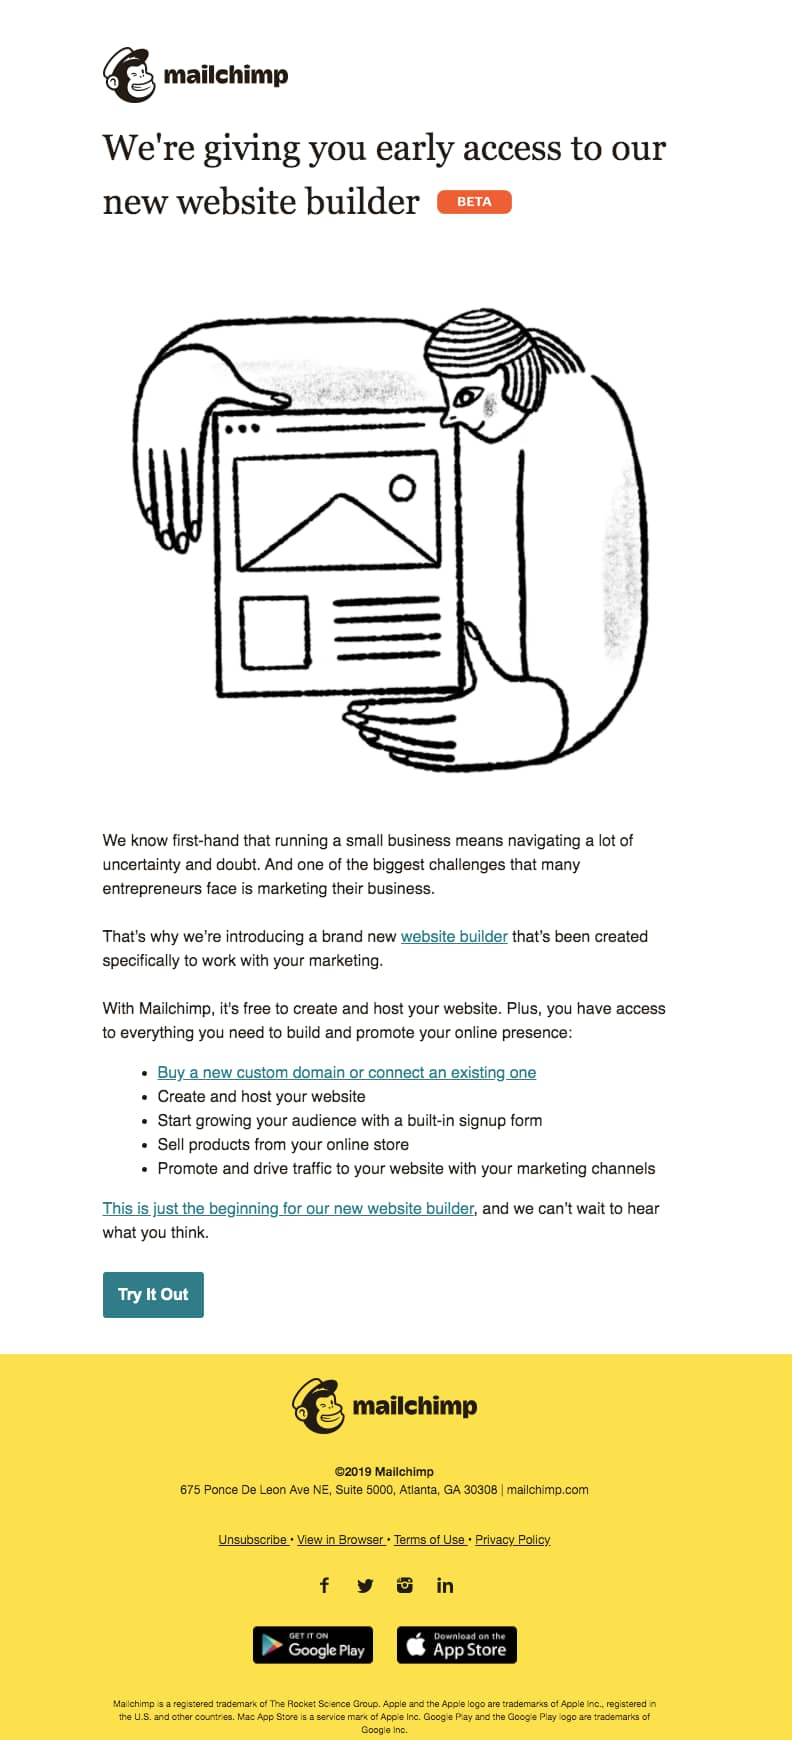 mailchimp early access beta announcement new product email example